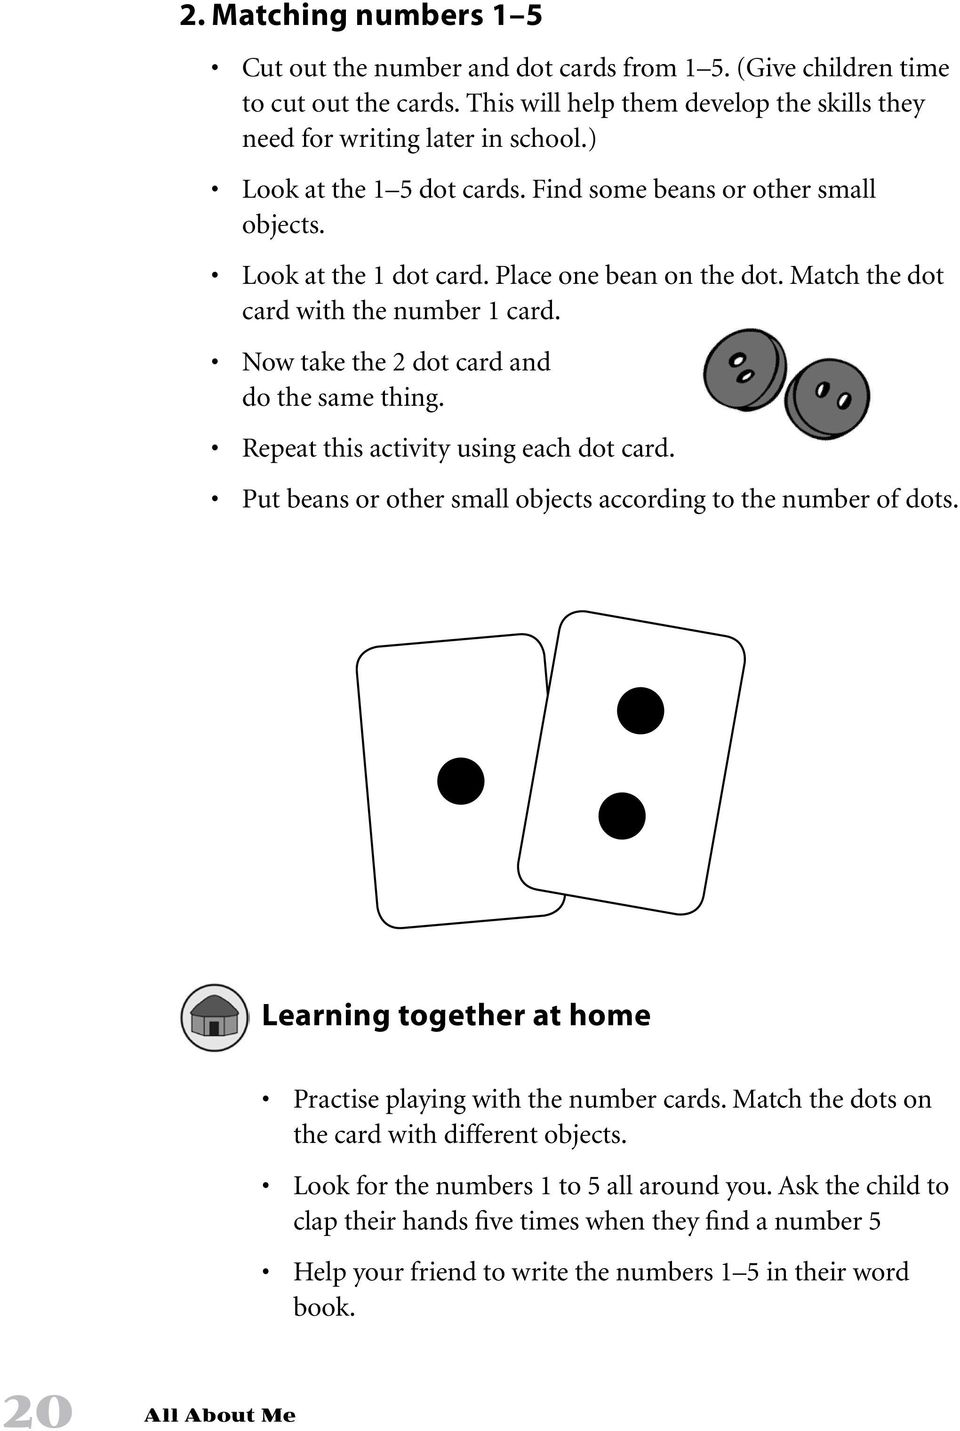 Now take the 2 dot card and do the same thing. Repeat this activity using each dot card. Put beans or other small objects according to the number of dots.